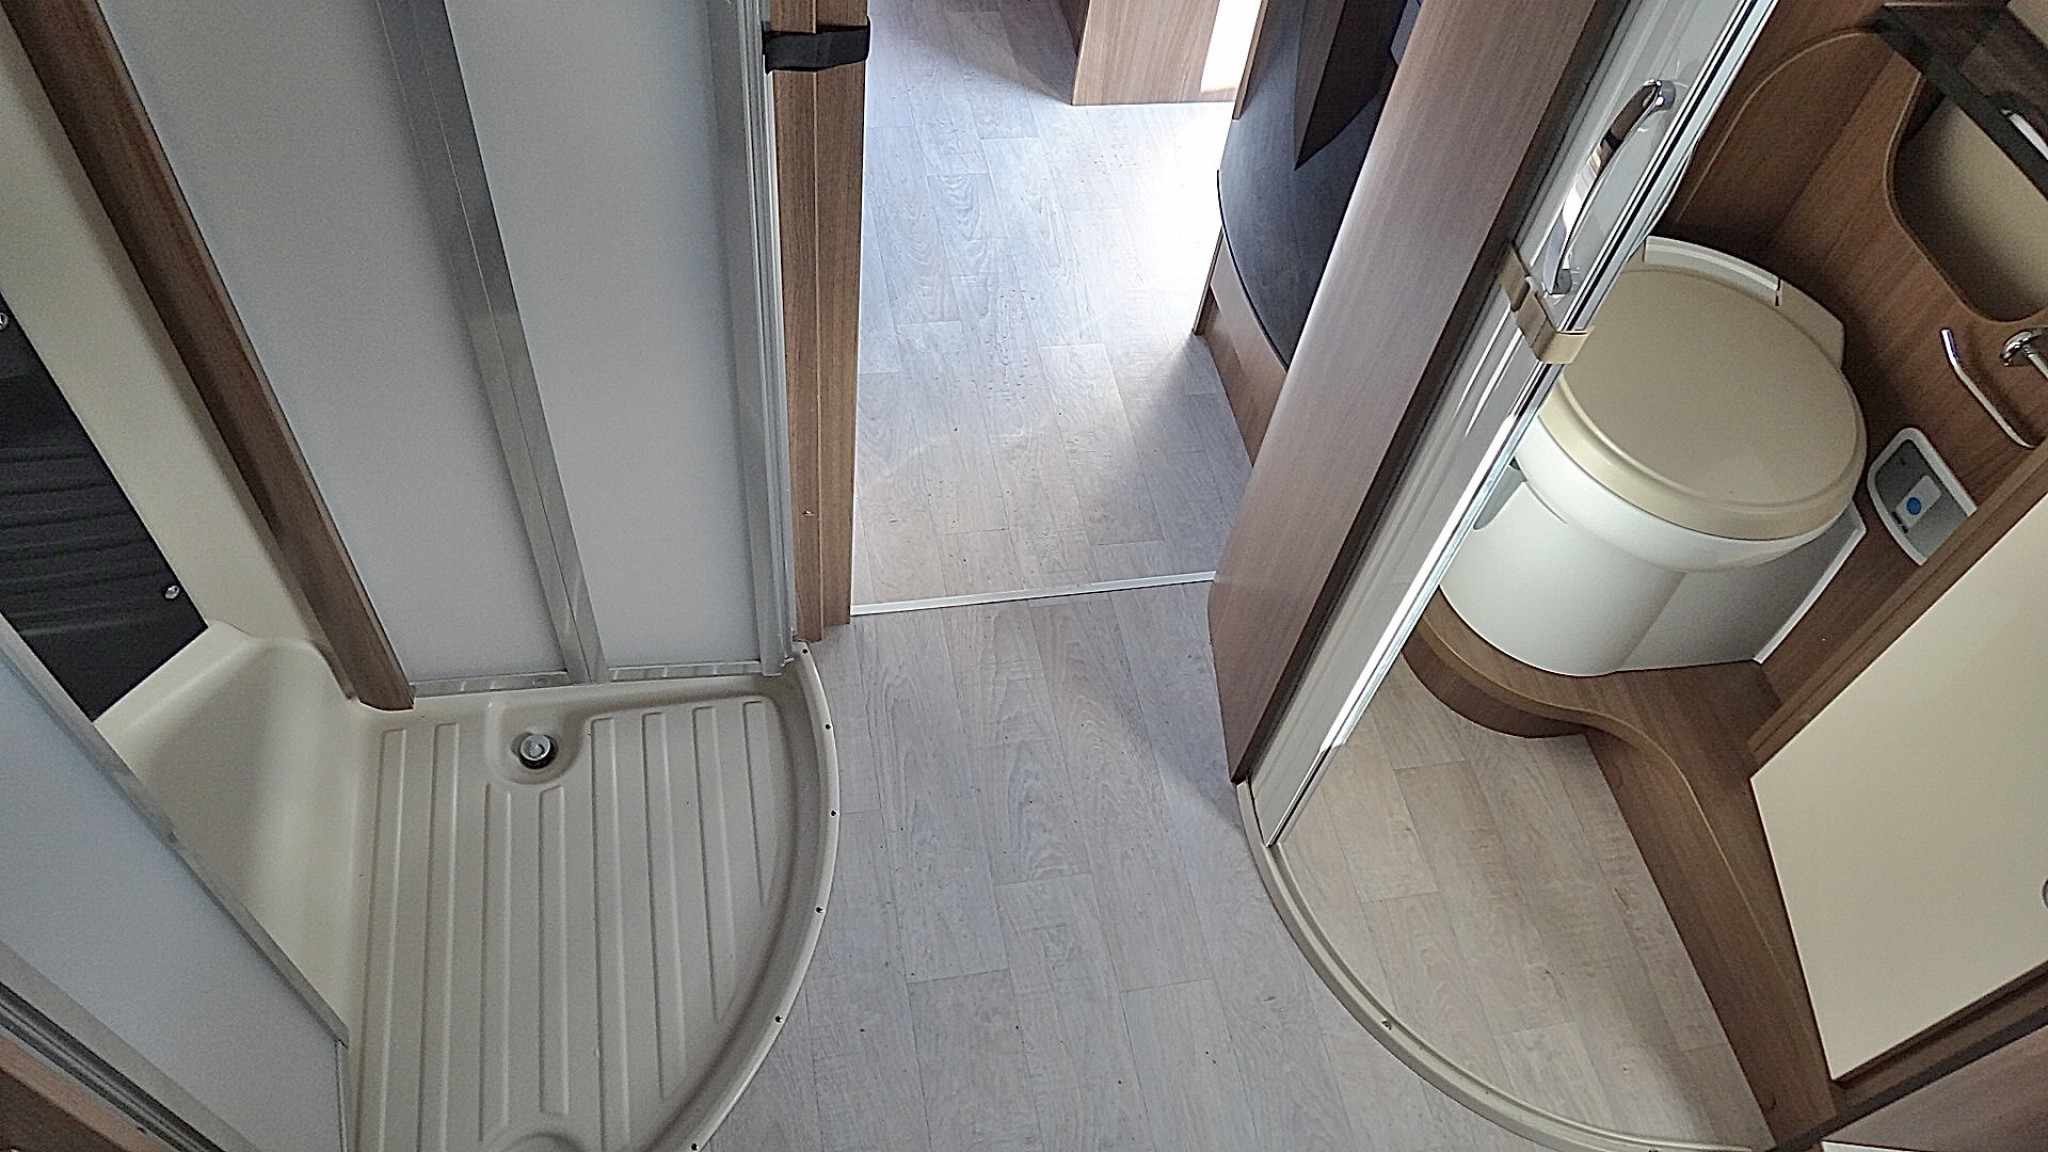 chausson flash 718 eb occasion de 2014 - fiat